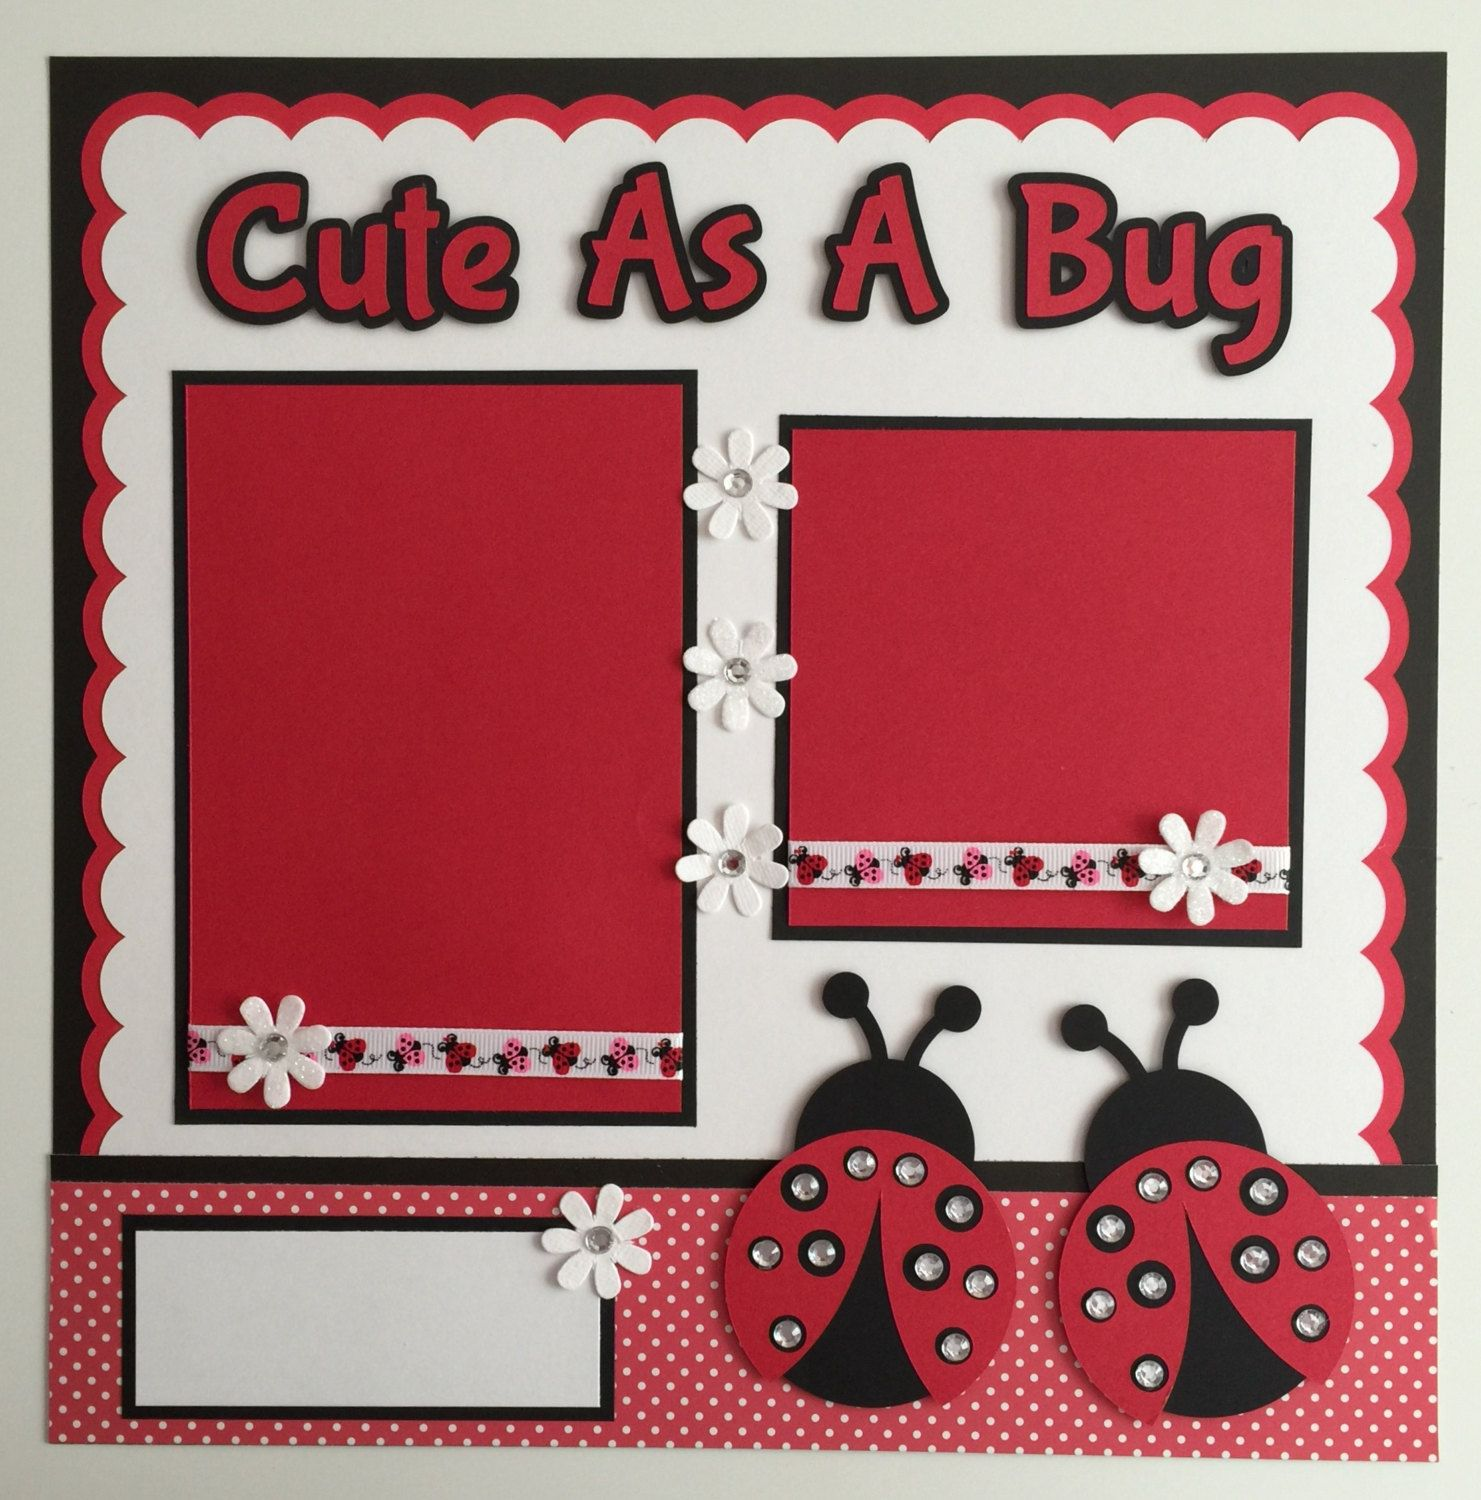 Handmade premade cute as a bug ladybug scrapbook page layout by juliespapercrafts on etsy - Scrapbooking idees pages ...